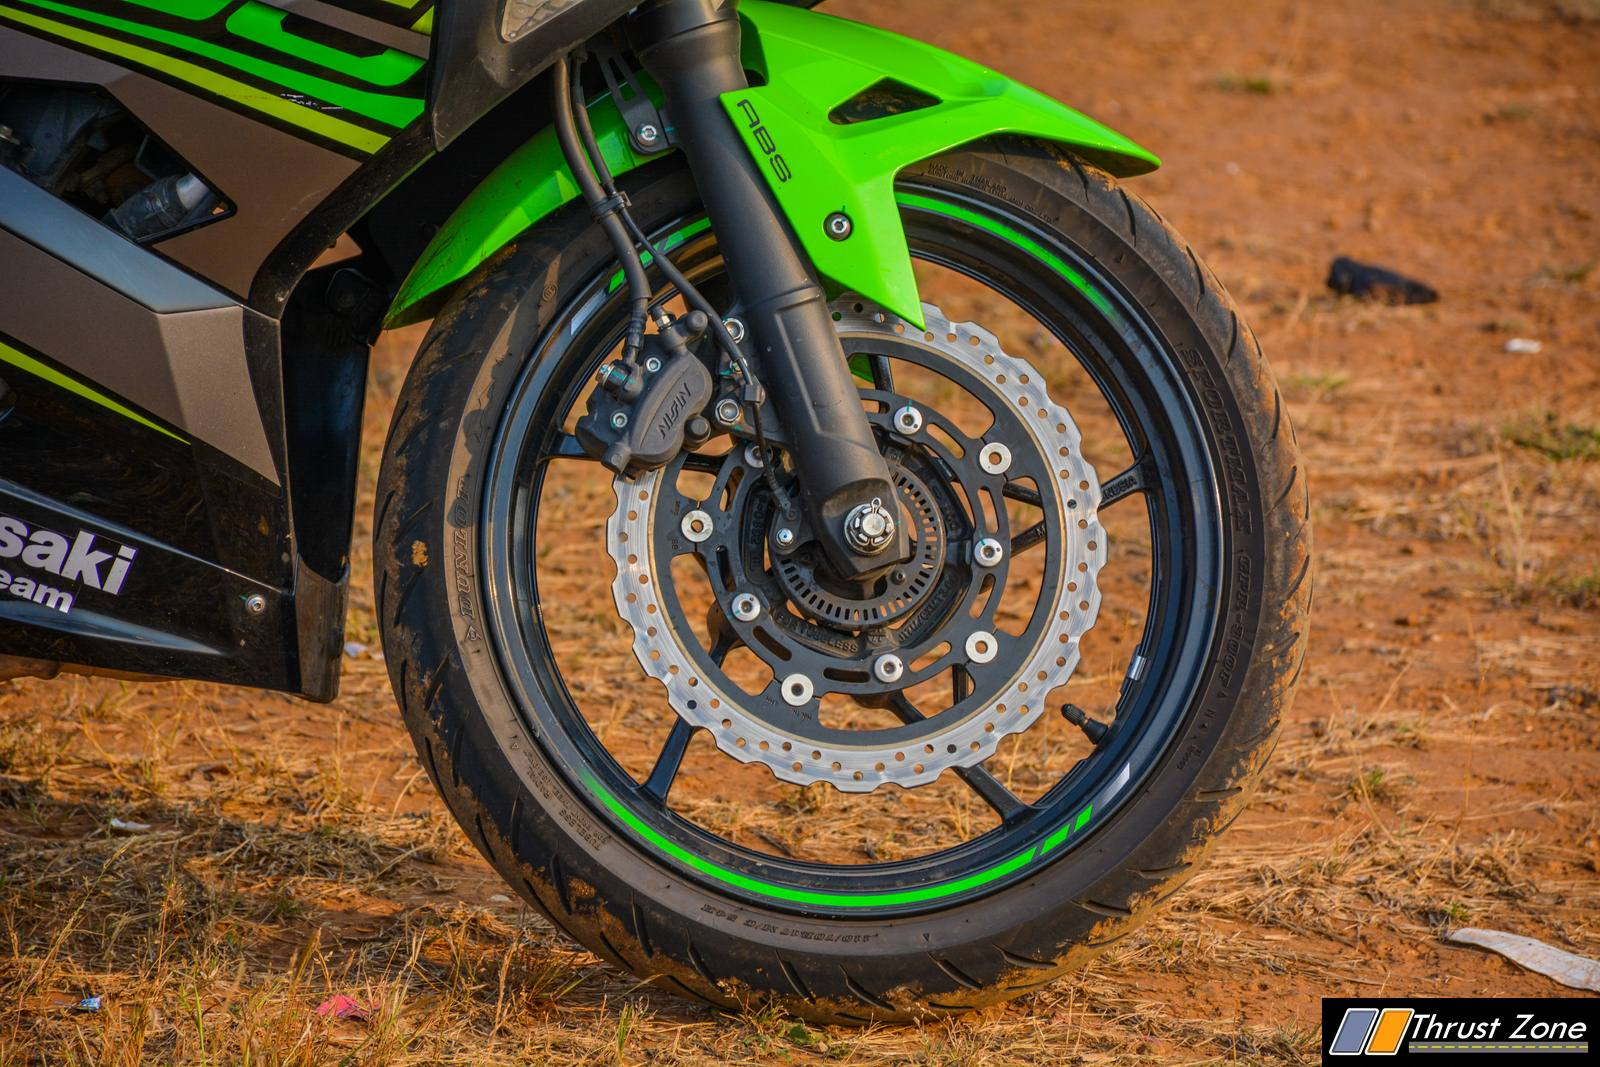 https://www.thrustzone.com/wp-content/uploads/2018/11/2018-Kawasaki-Ninja-400-India-Review-16.jpg